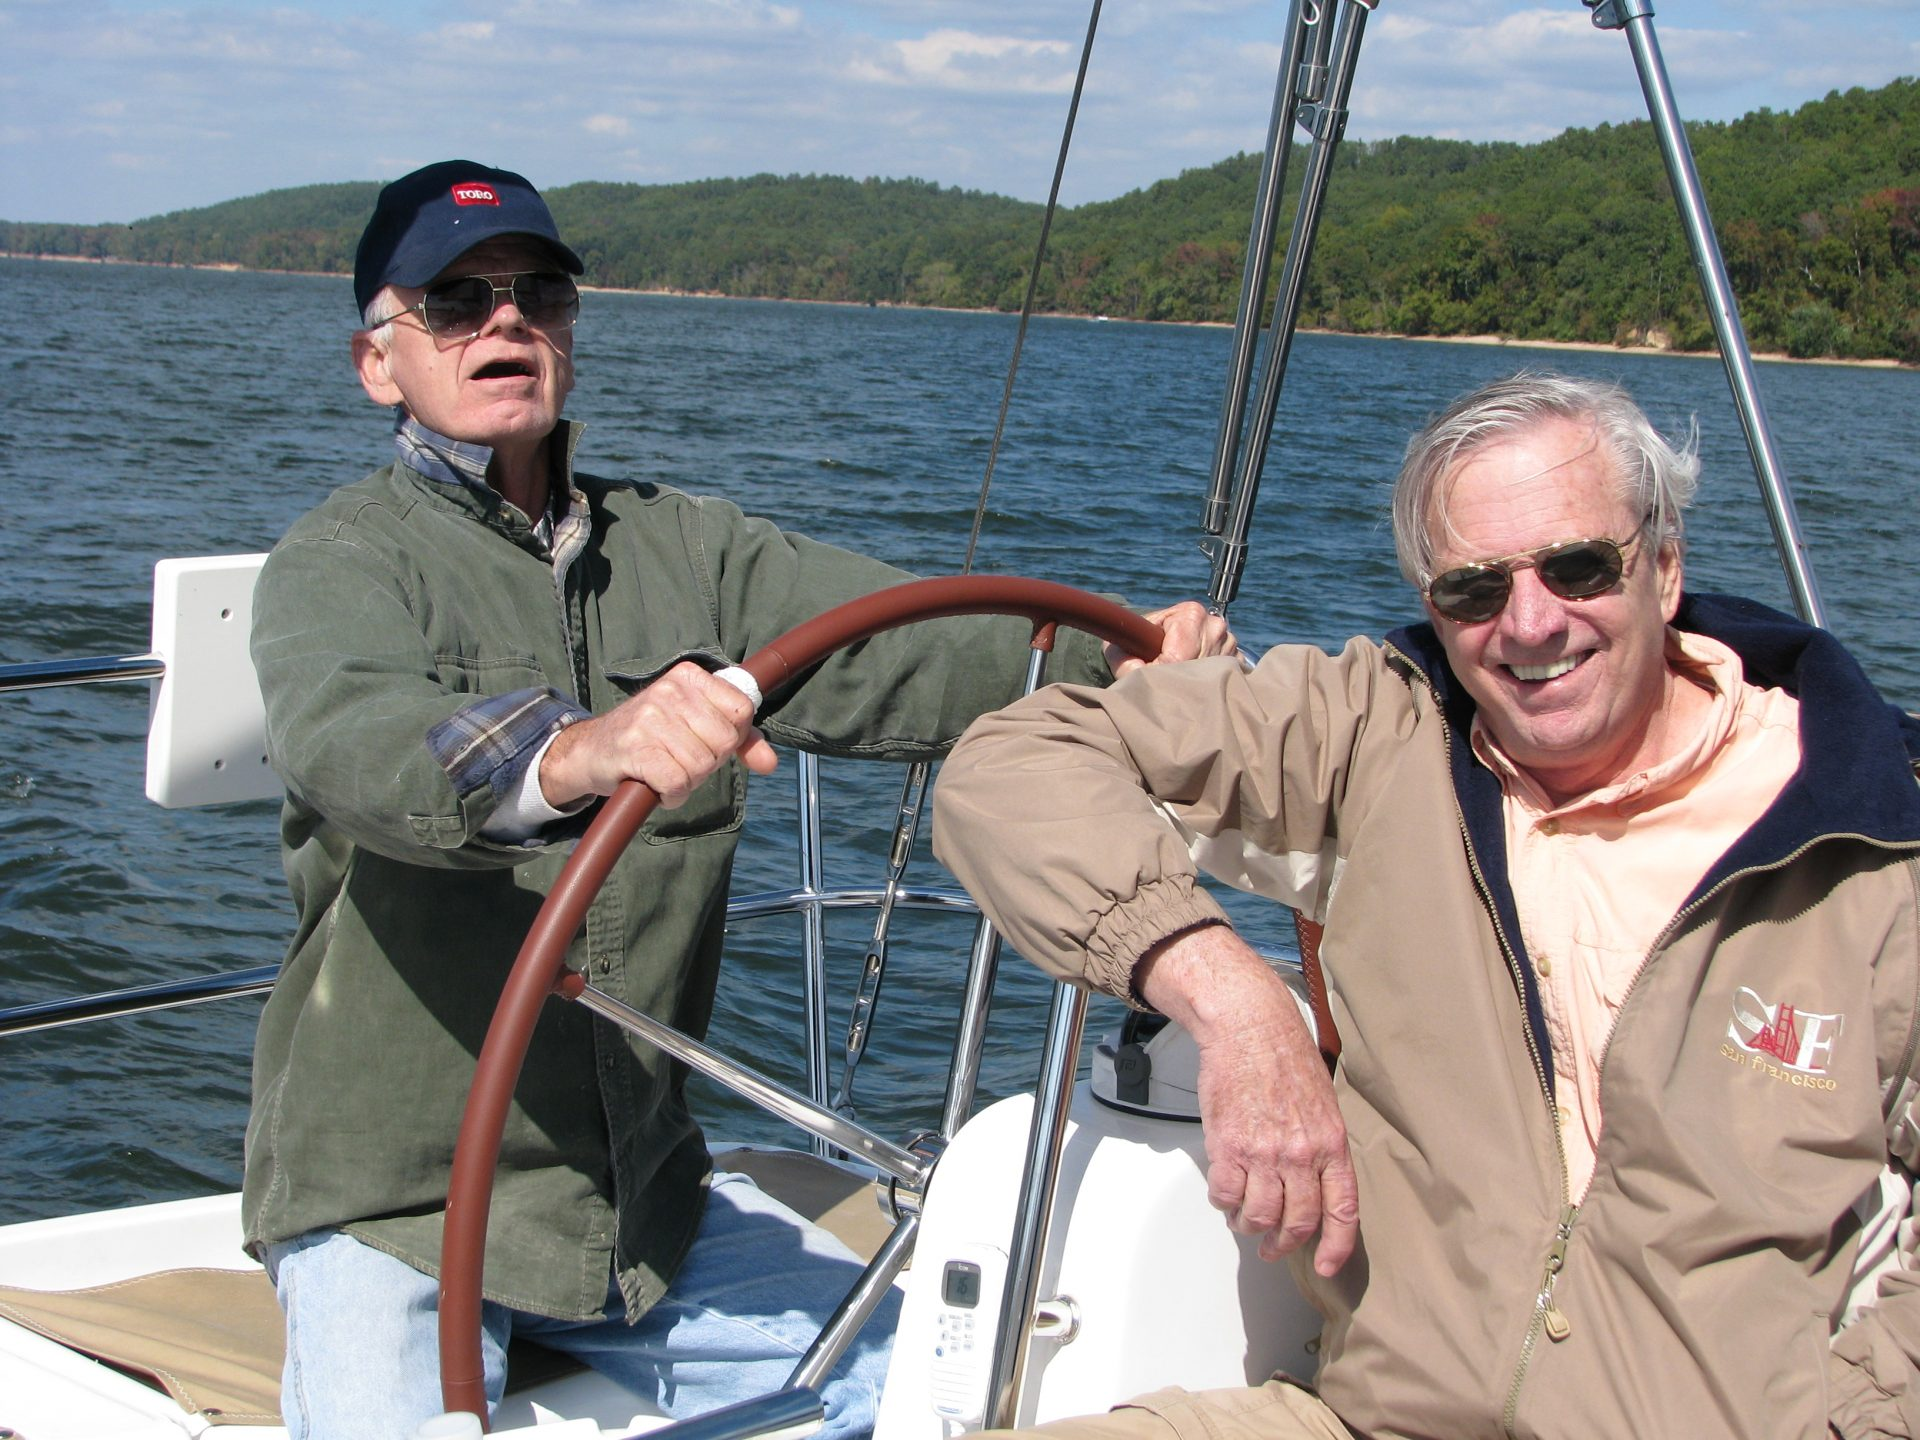 Sailing with Tom Robertson (with Jill and Carl)